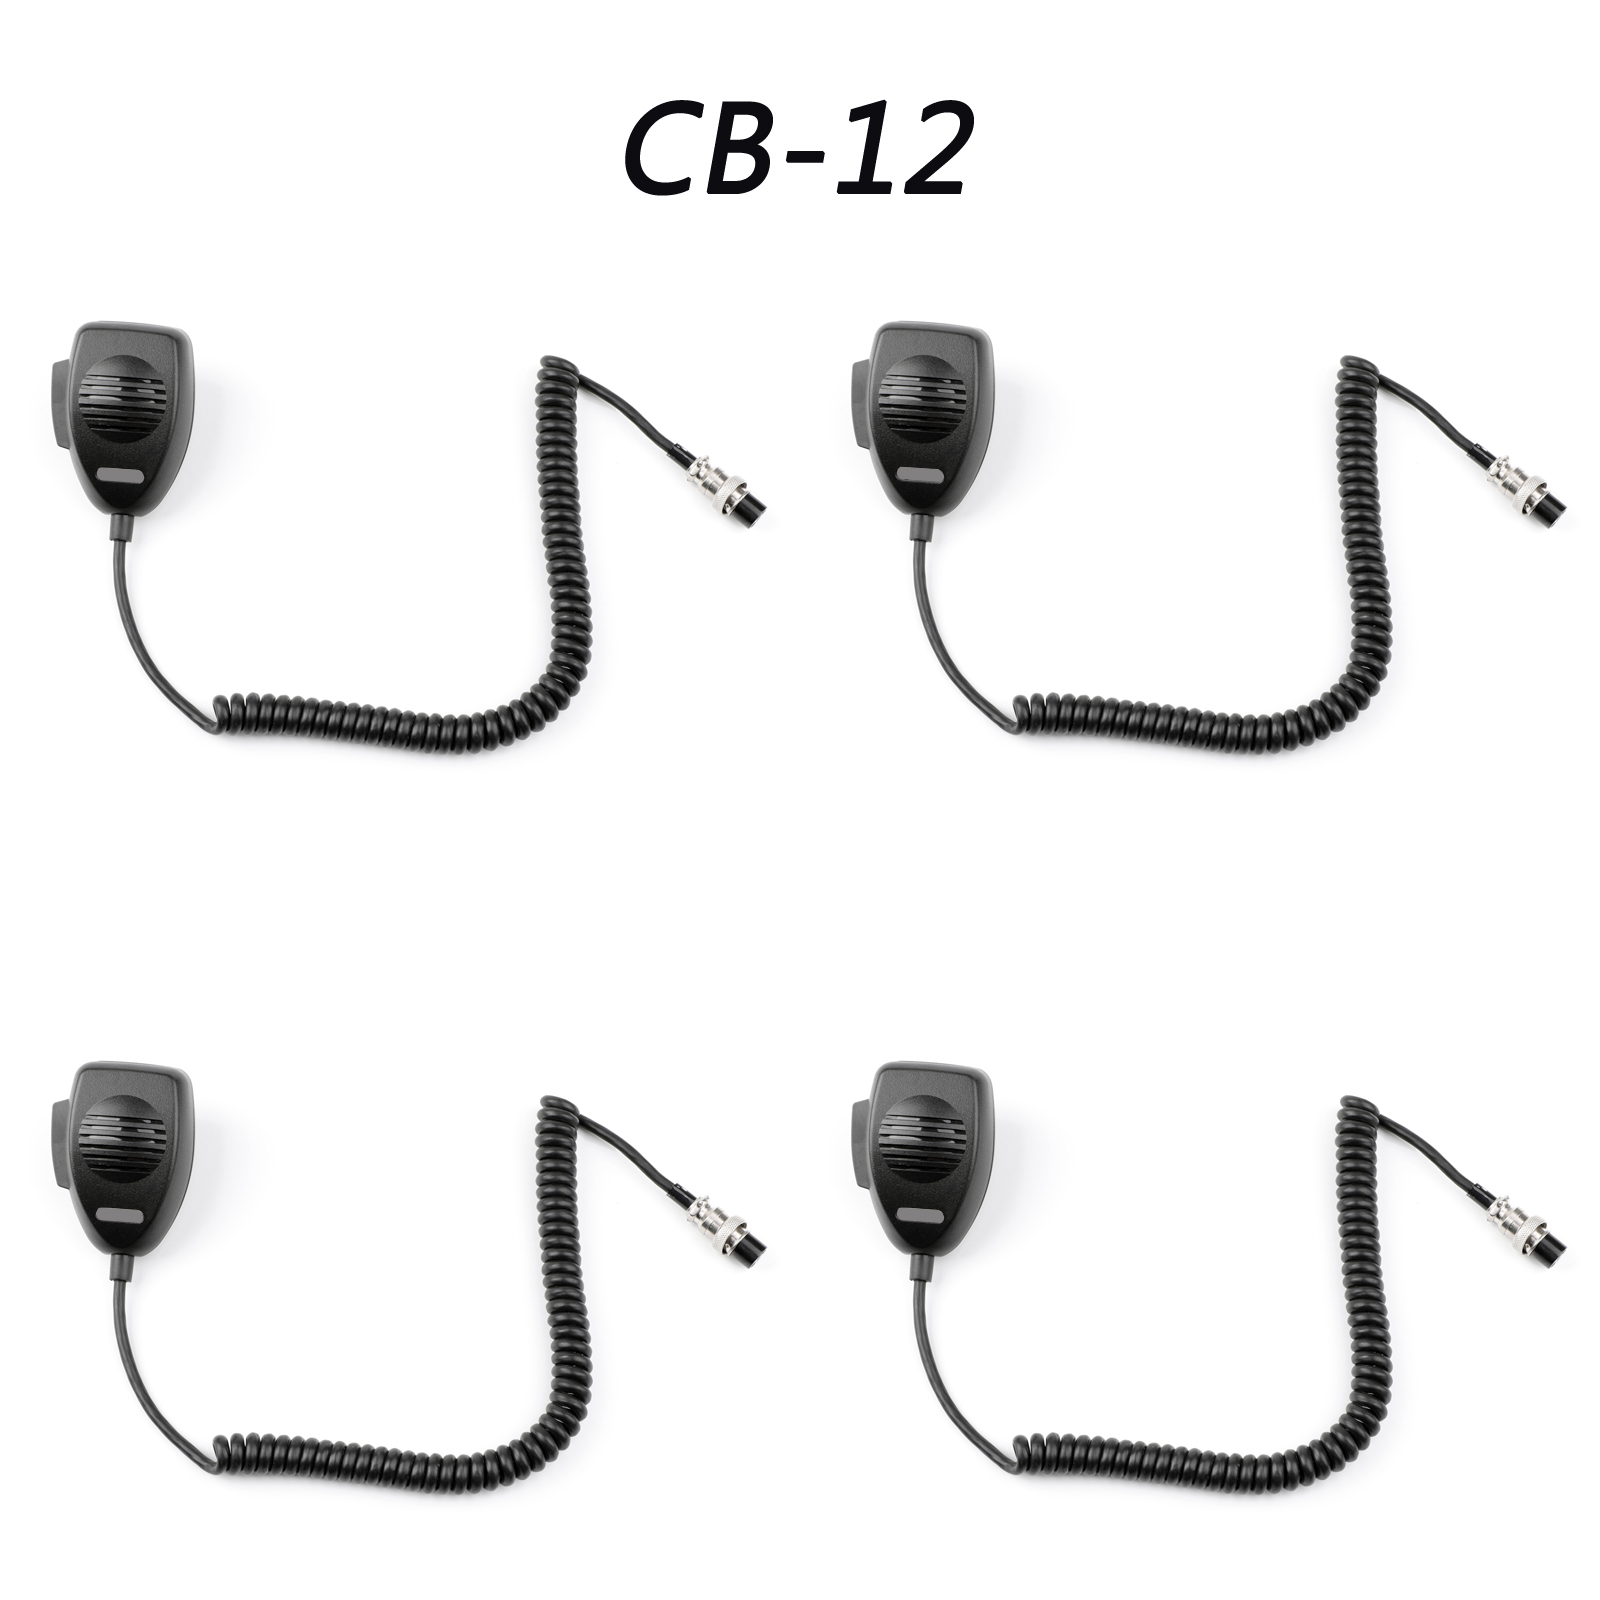 For COBRA Cobra Walkie Talkie CB-12 Car Hand Microphone